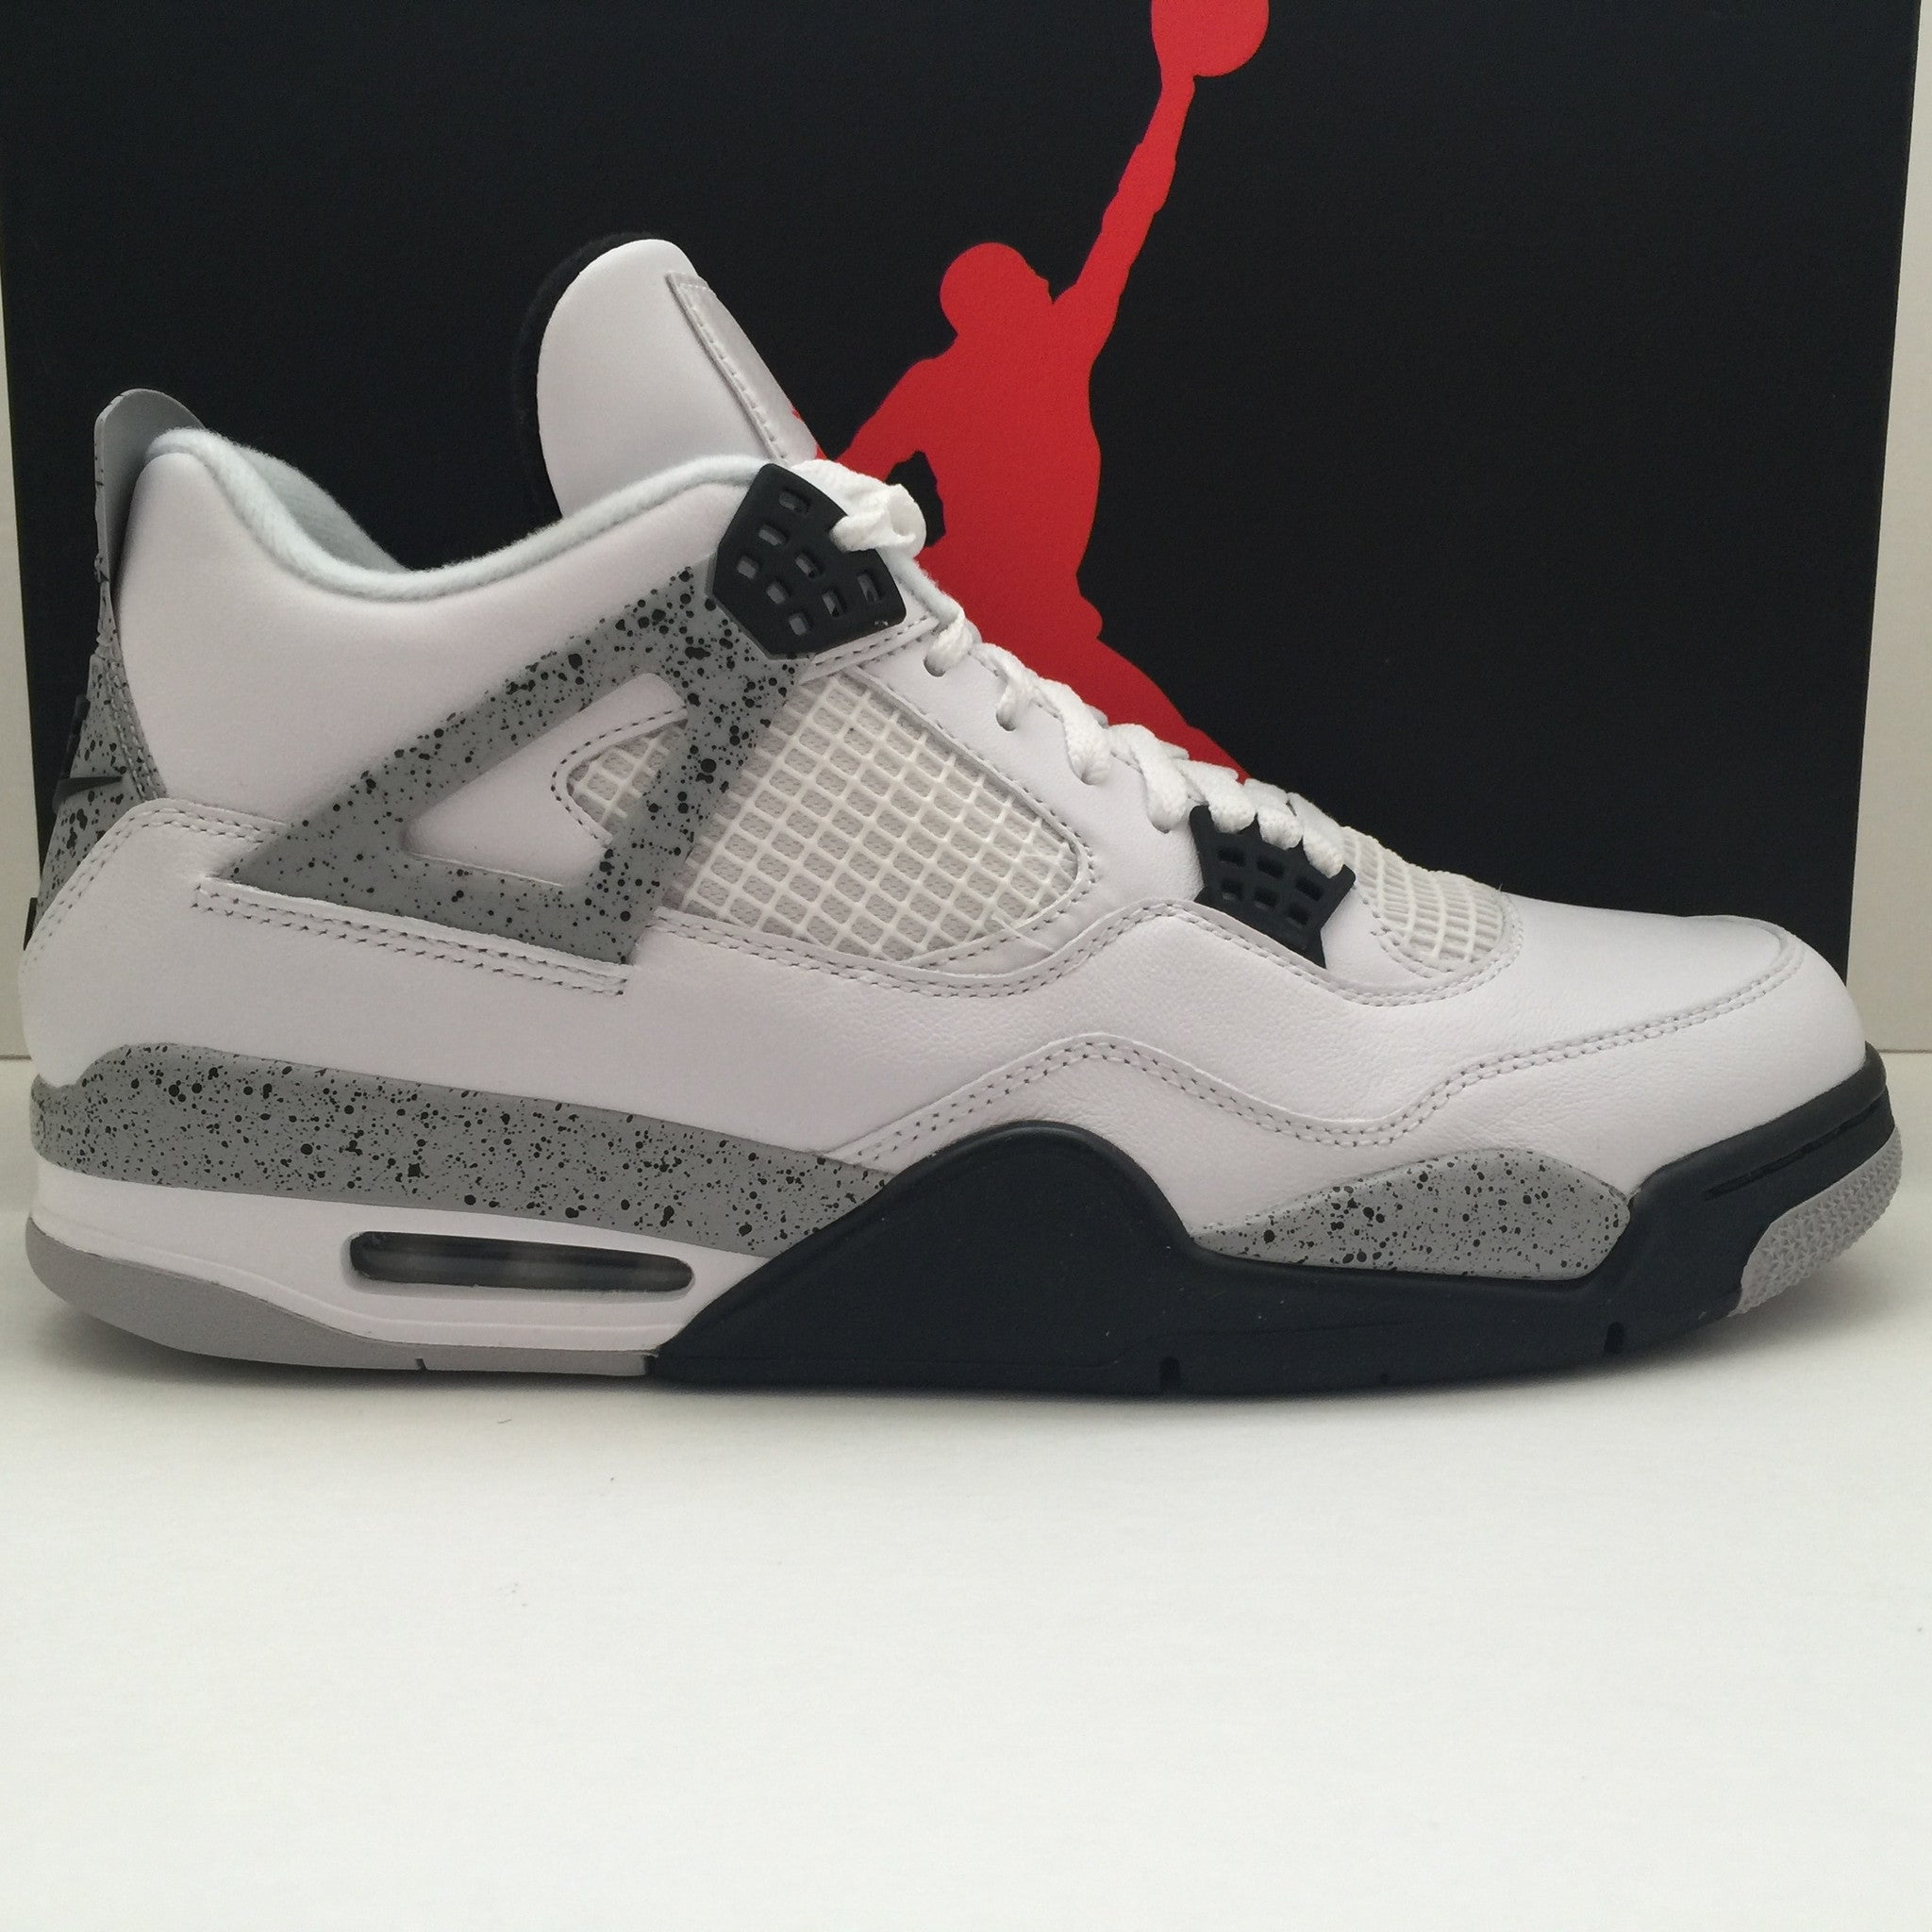 ... DS Nike Air Jordan 4 Retro OG Cement Size 11/Size 11.5/Size 12